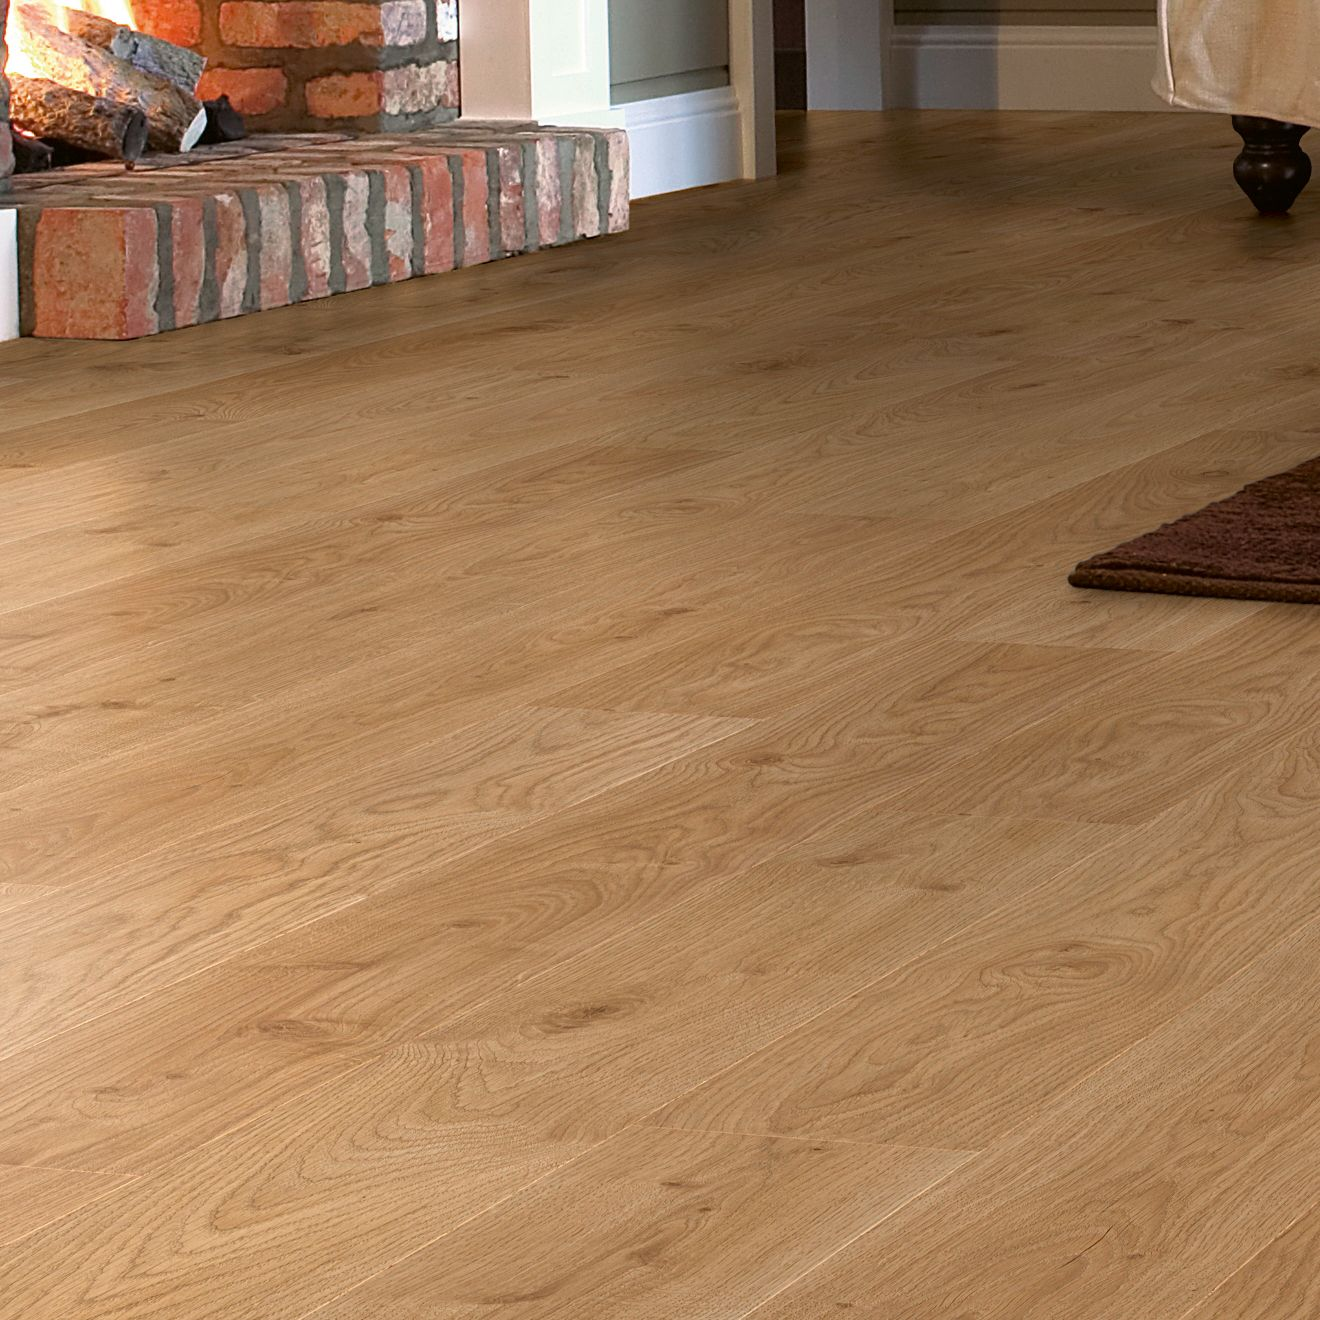 Quickstep Andante Natural White Oak Effect Laminate Flooring 1 72 M² Pack Departments Diy At B Q